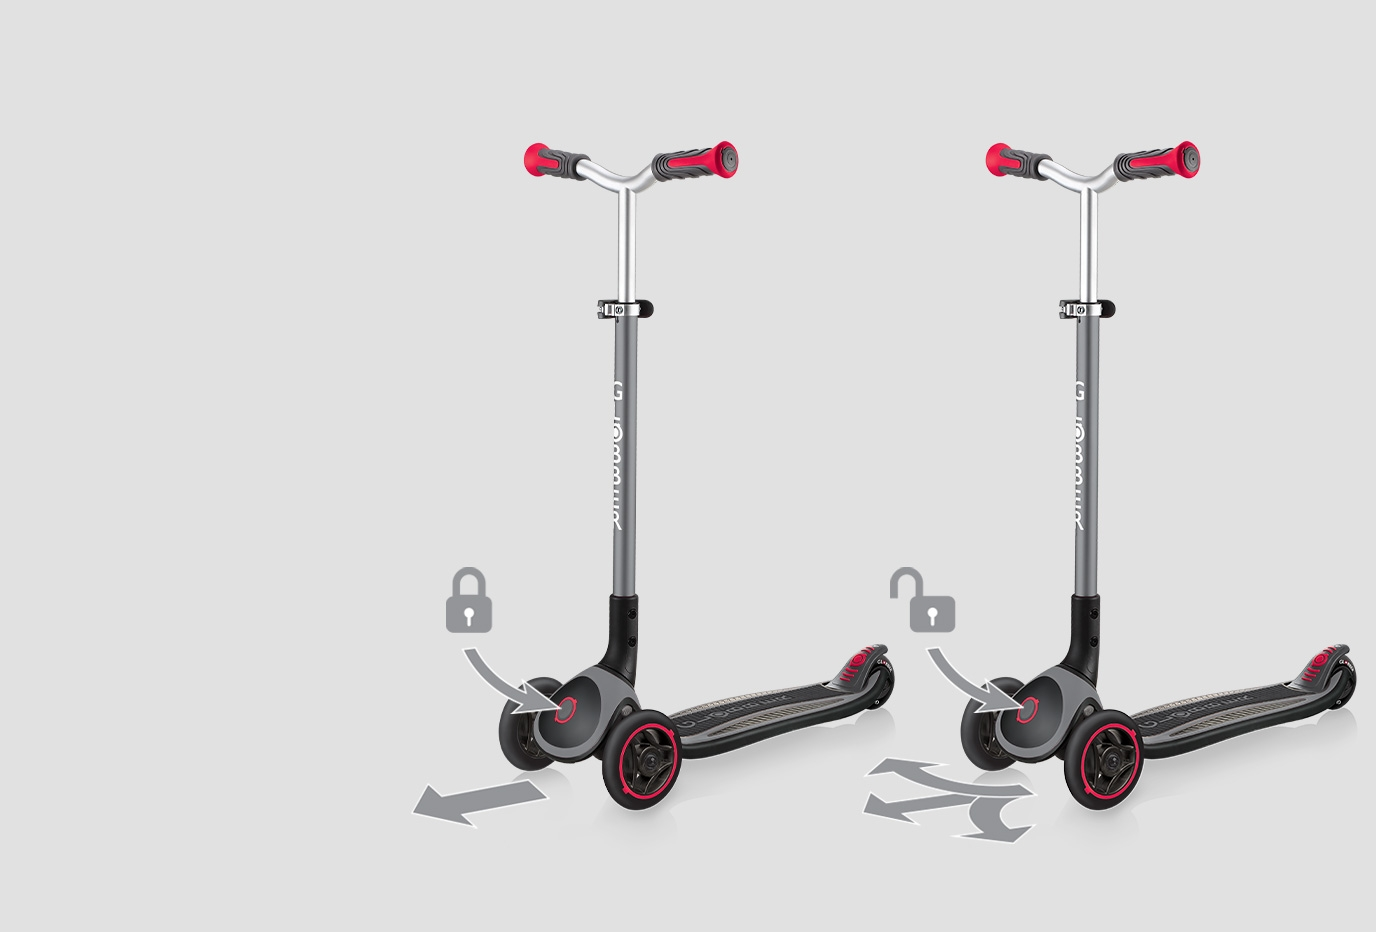 Globber-MASTER-3-wheel-foldable-scooters-with-patented-steering-lock-system